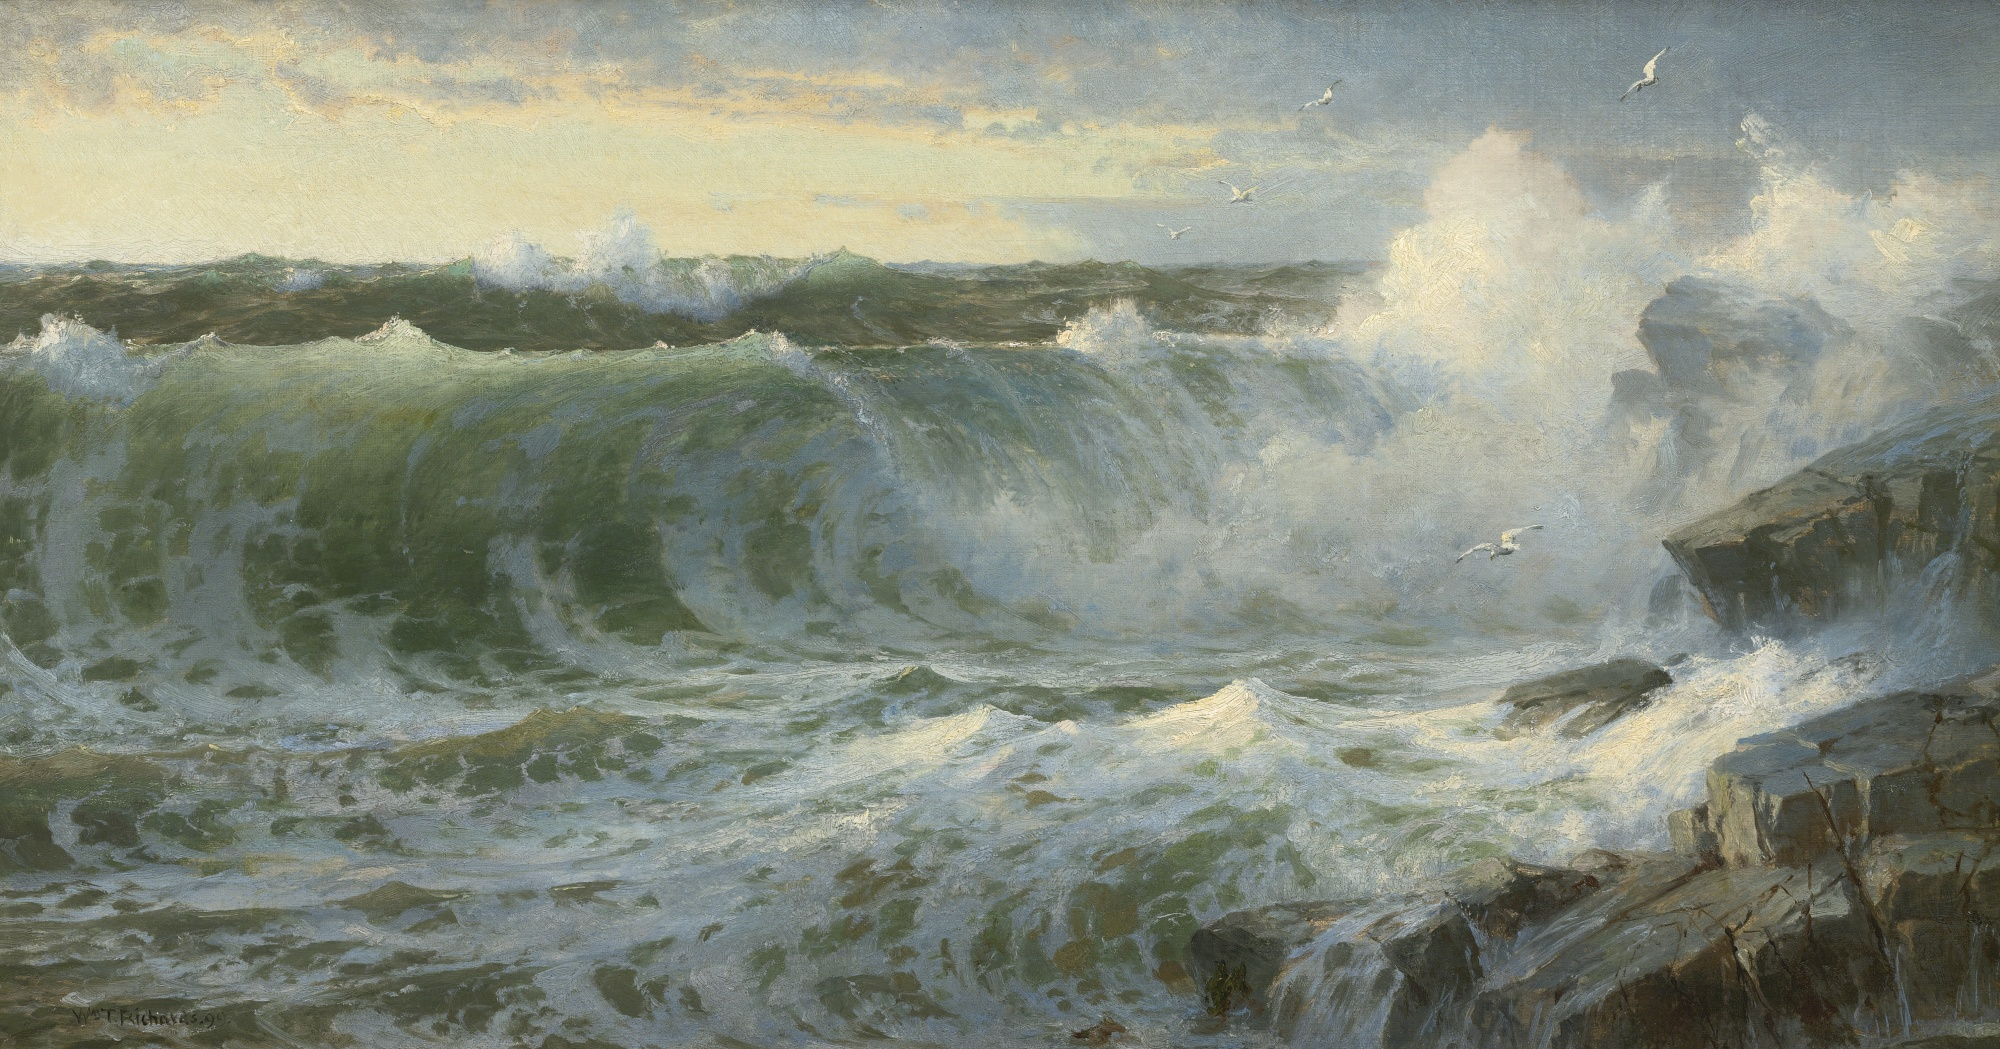 Rocky Surf off Rhode Island, by William Trost Richards, 1899